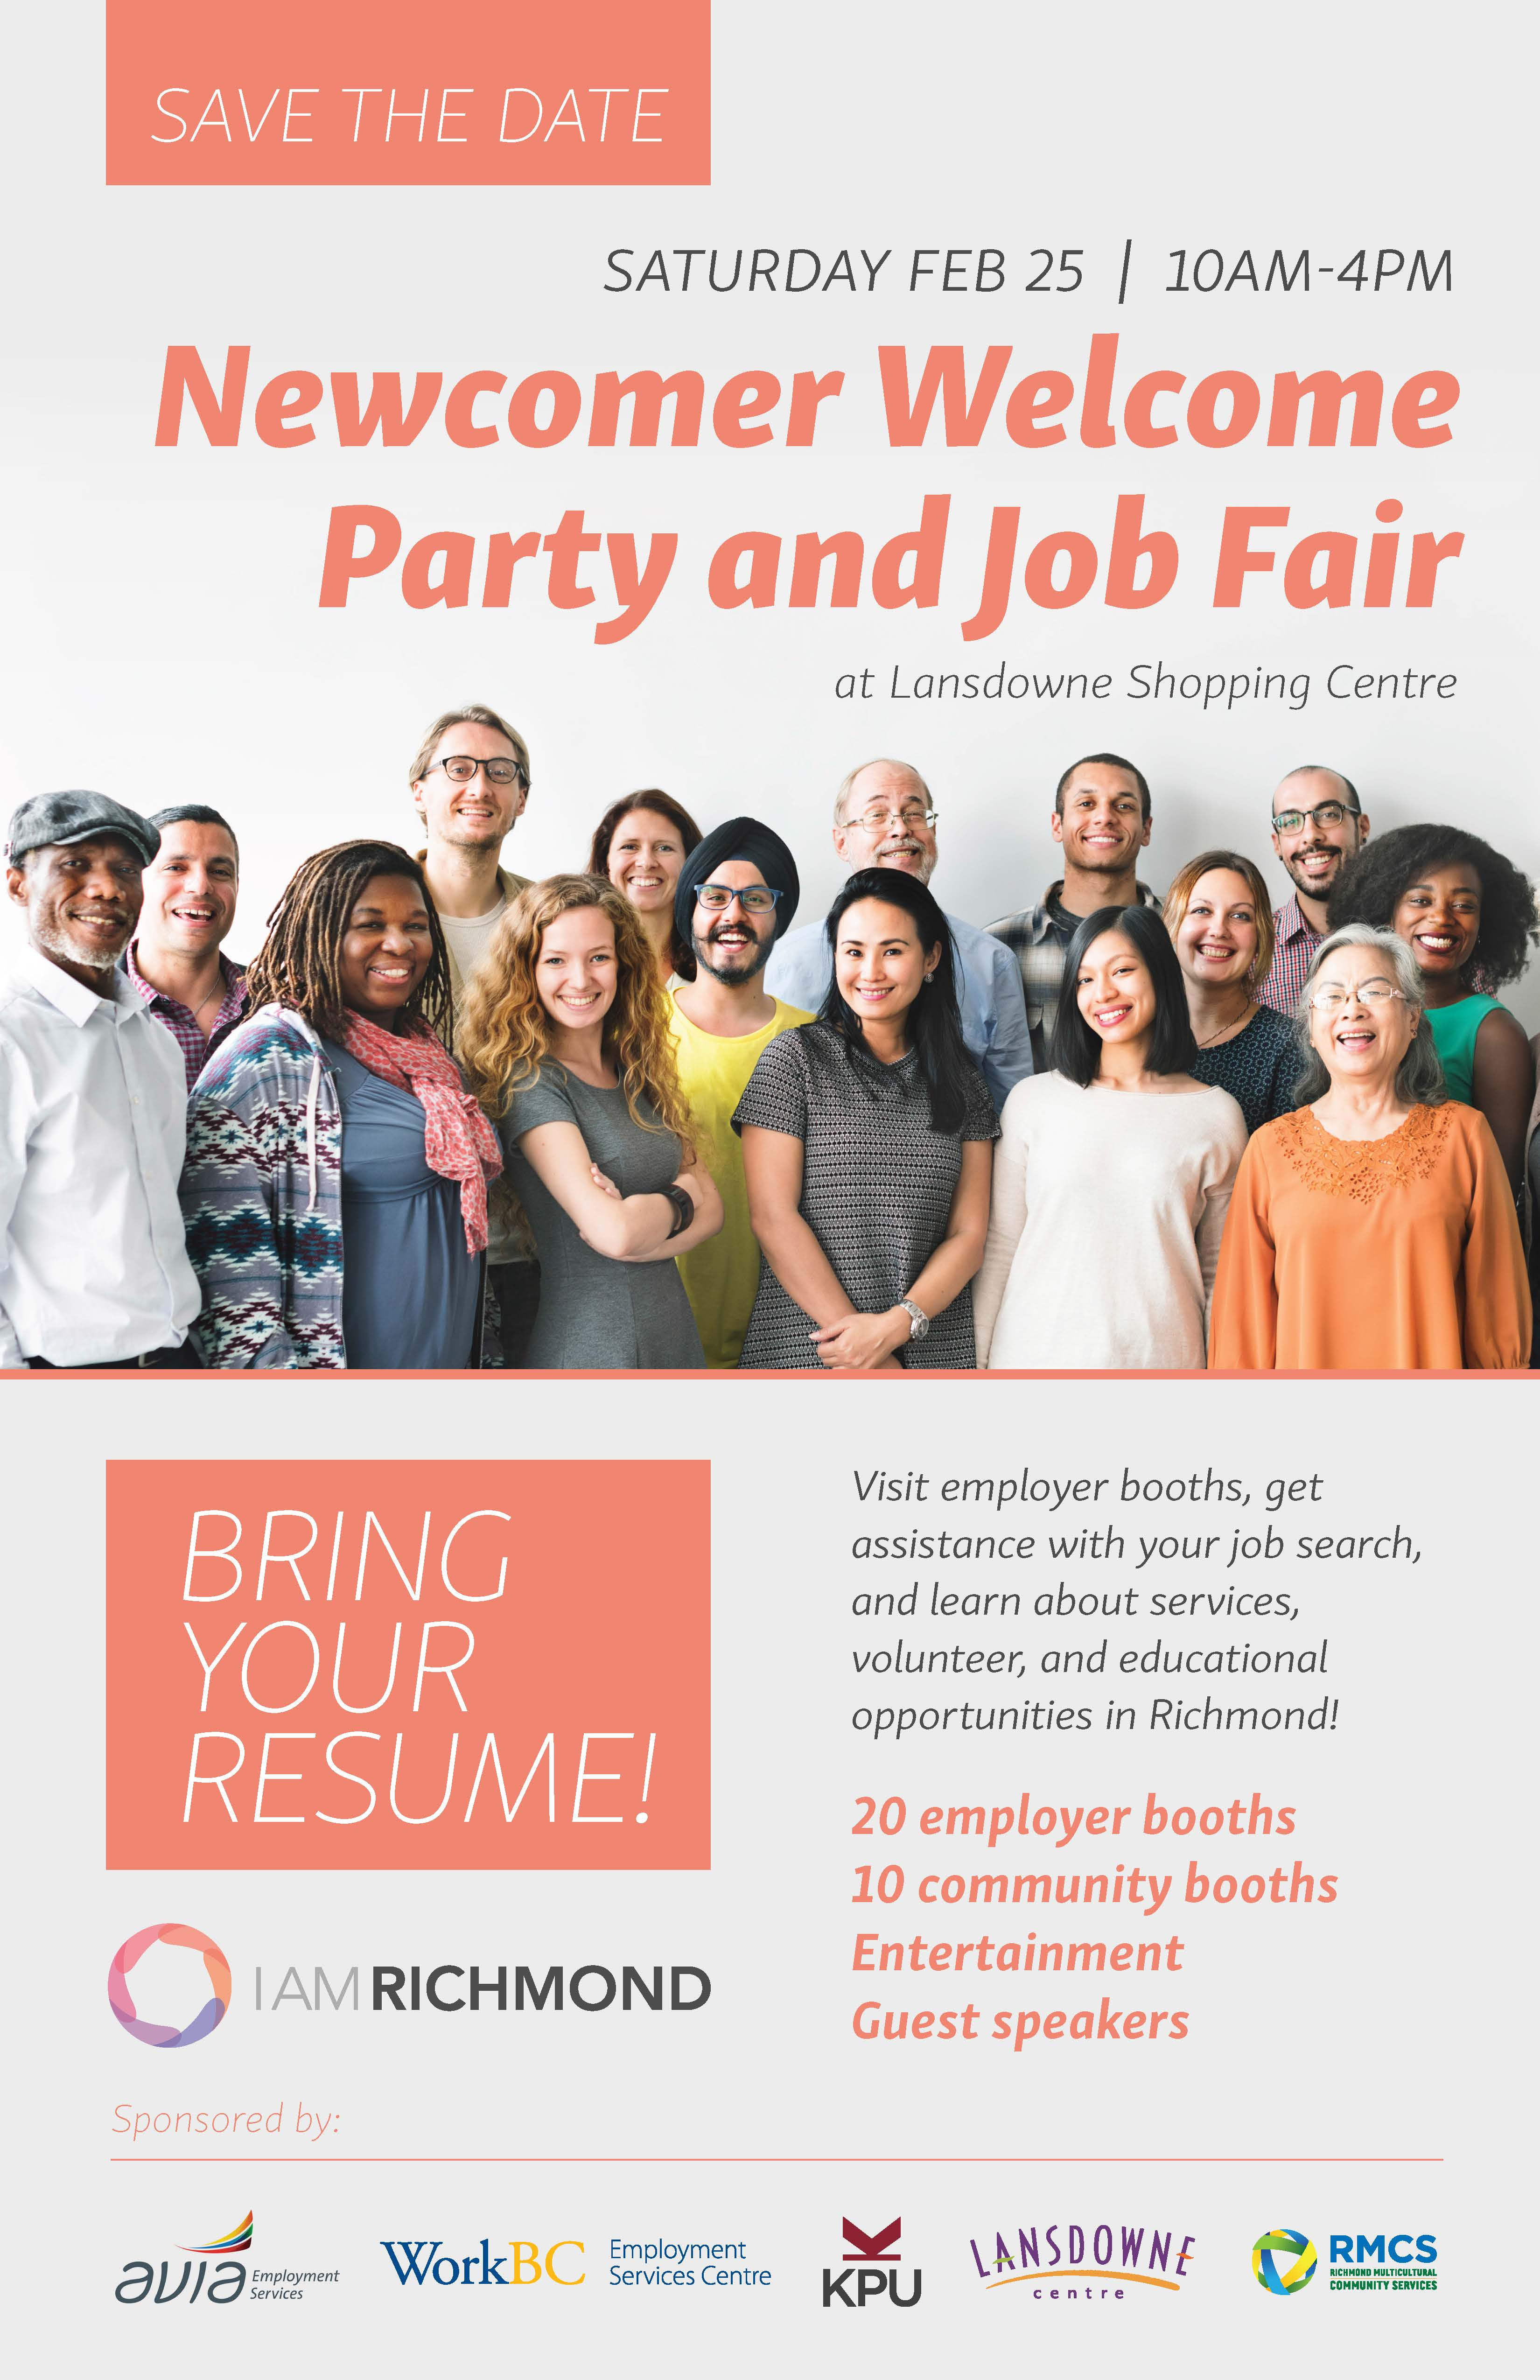 what to bring in job fair